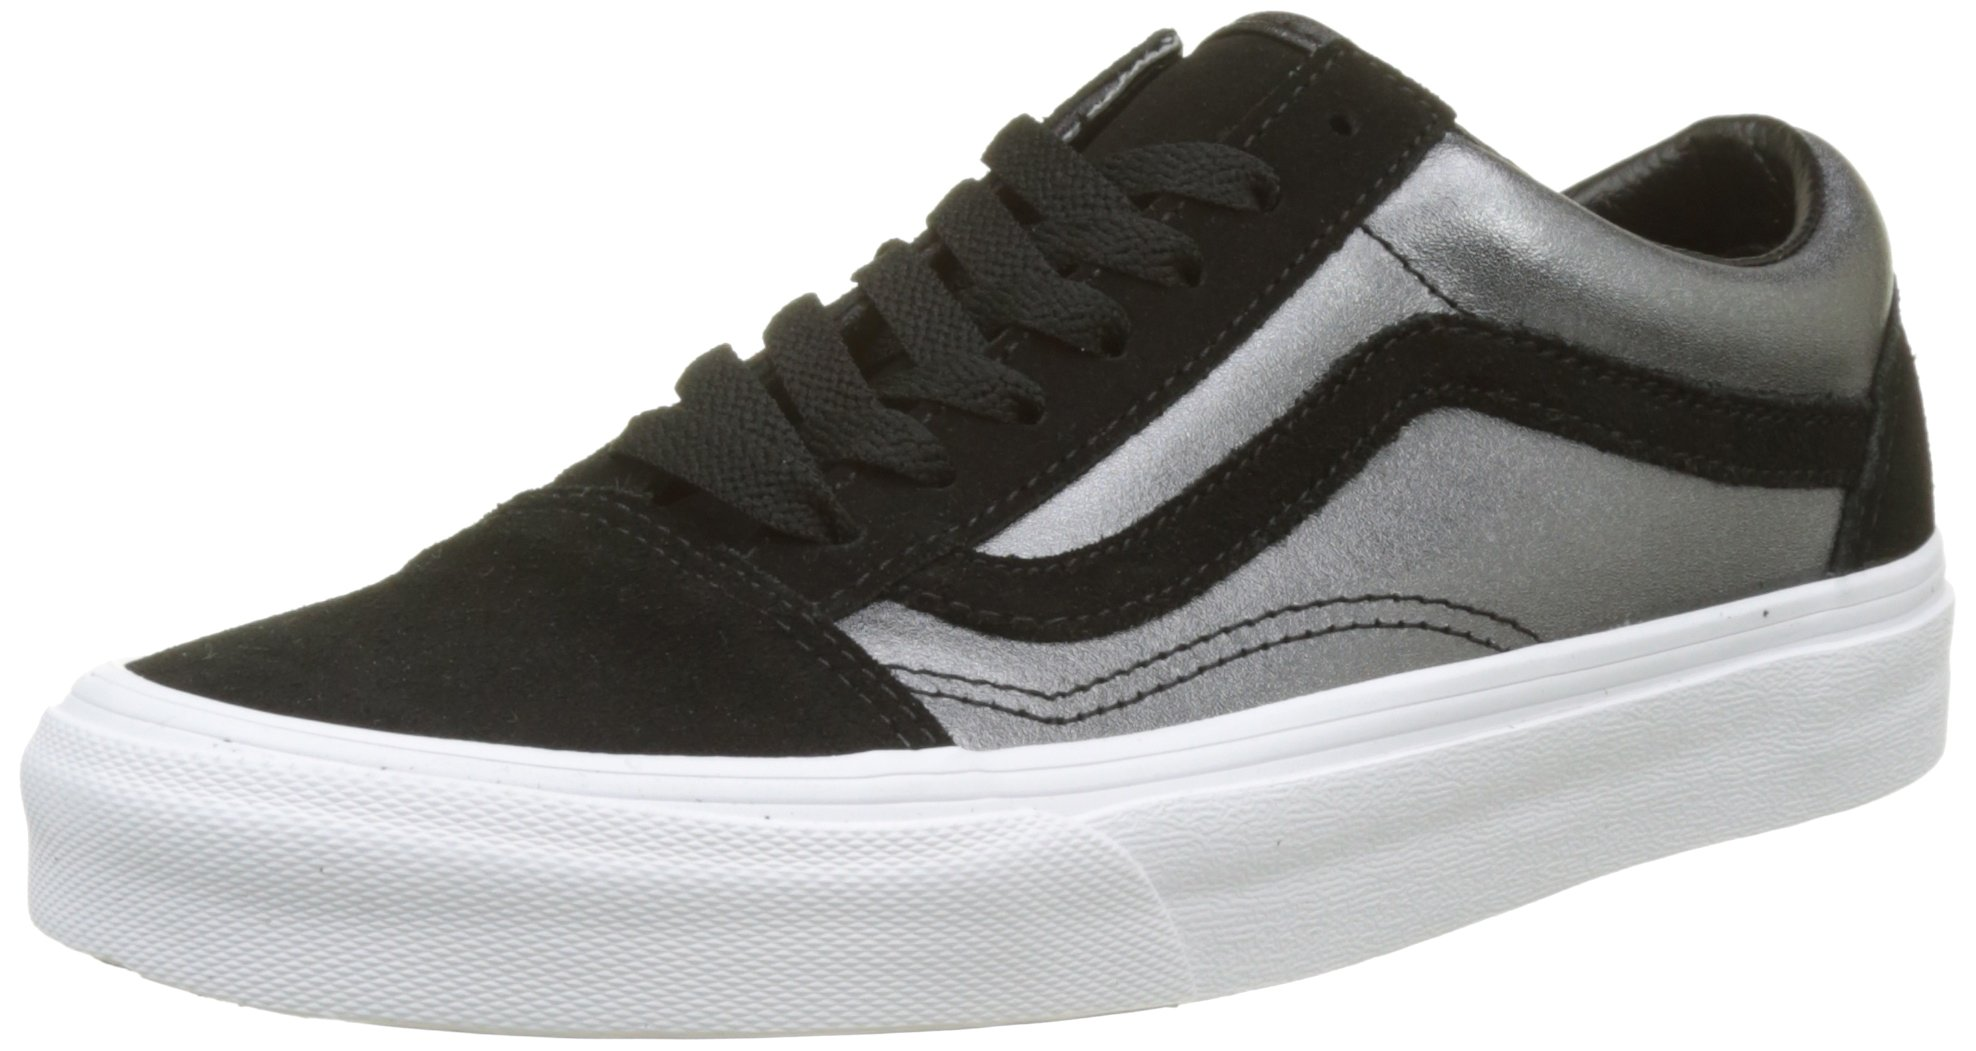 c2918767d0 Get Quotations · Vans Unisex Old Skool Classic Skate Shoes